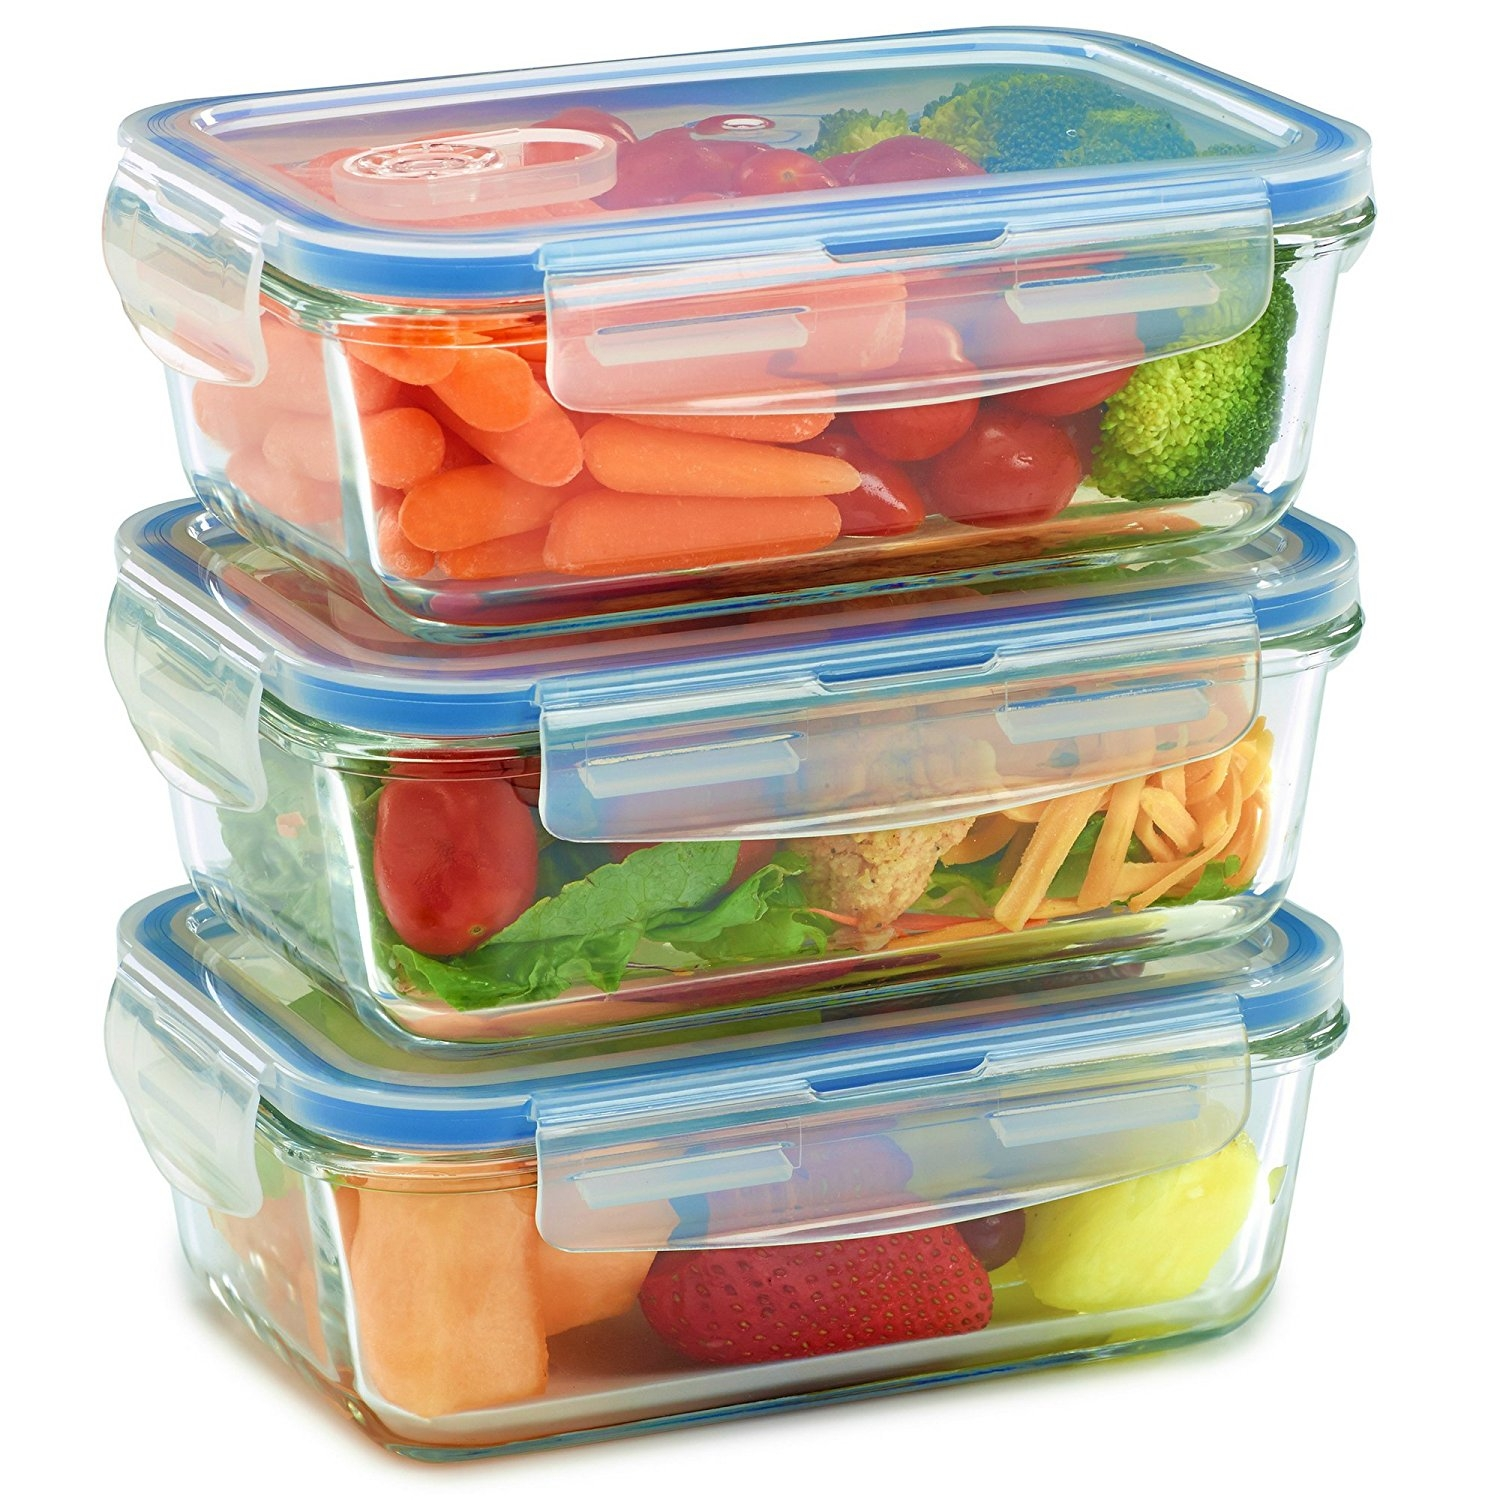 3 Pack   Glass Meal Prep Containers For Food Storage W/ Snap Locking Lids  Airtight